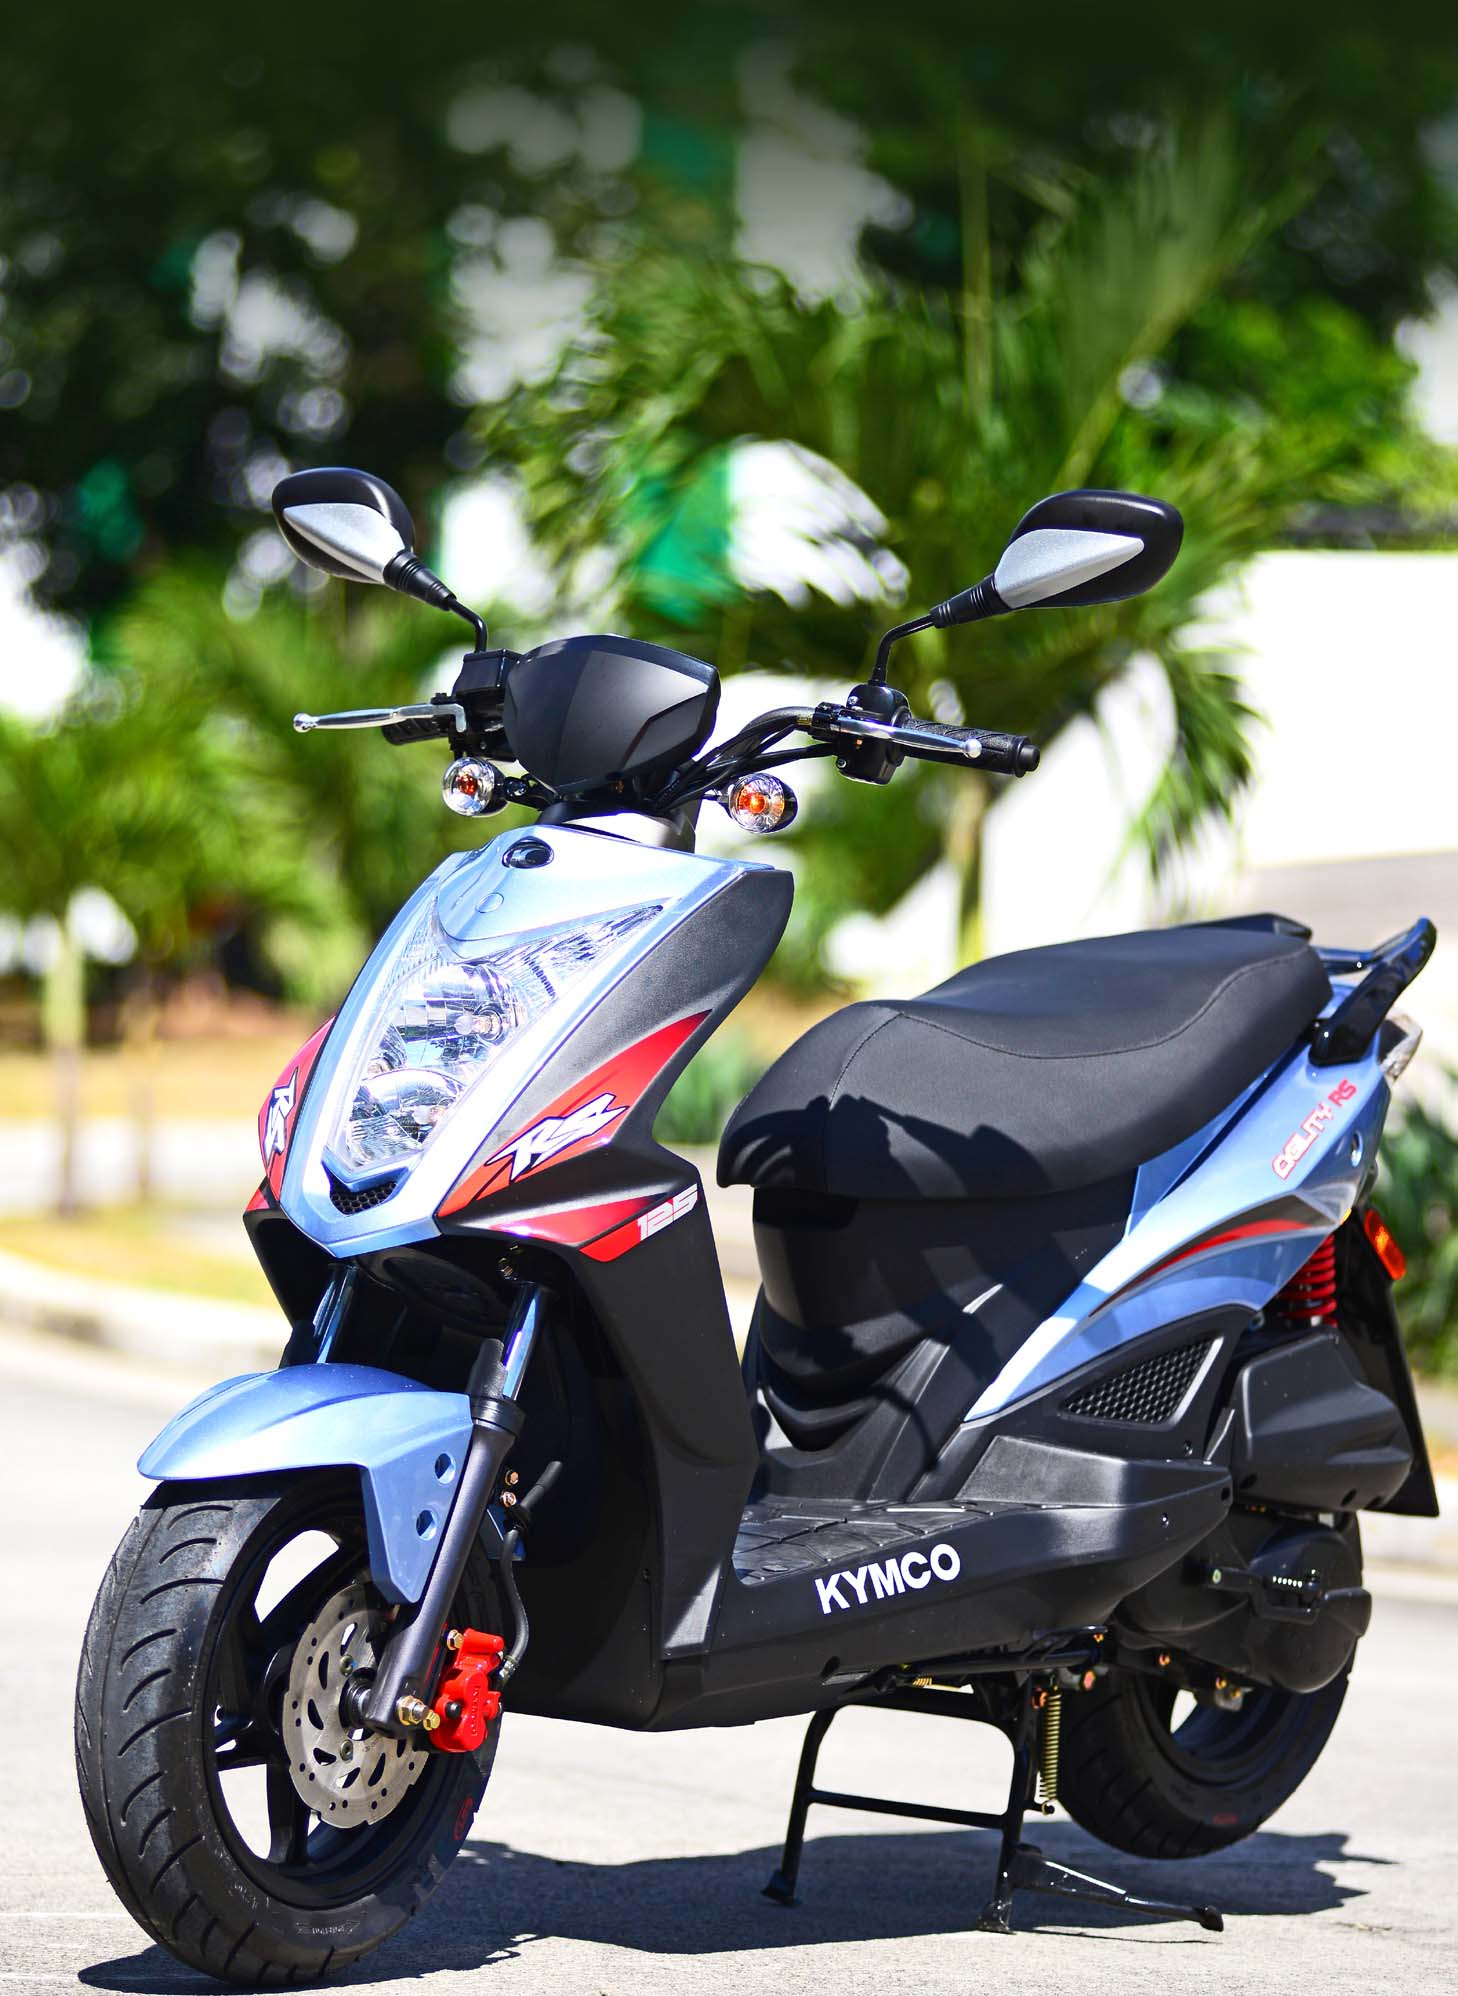 KYMCO AGIILITY RS 125: Naked Beauty Built for the Streets